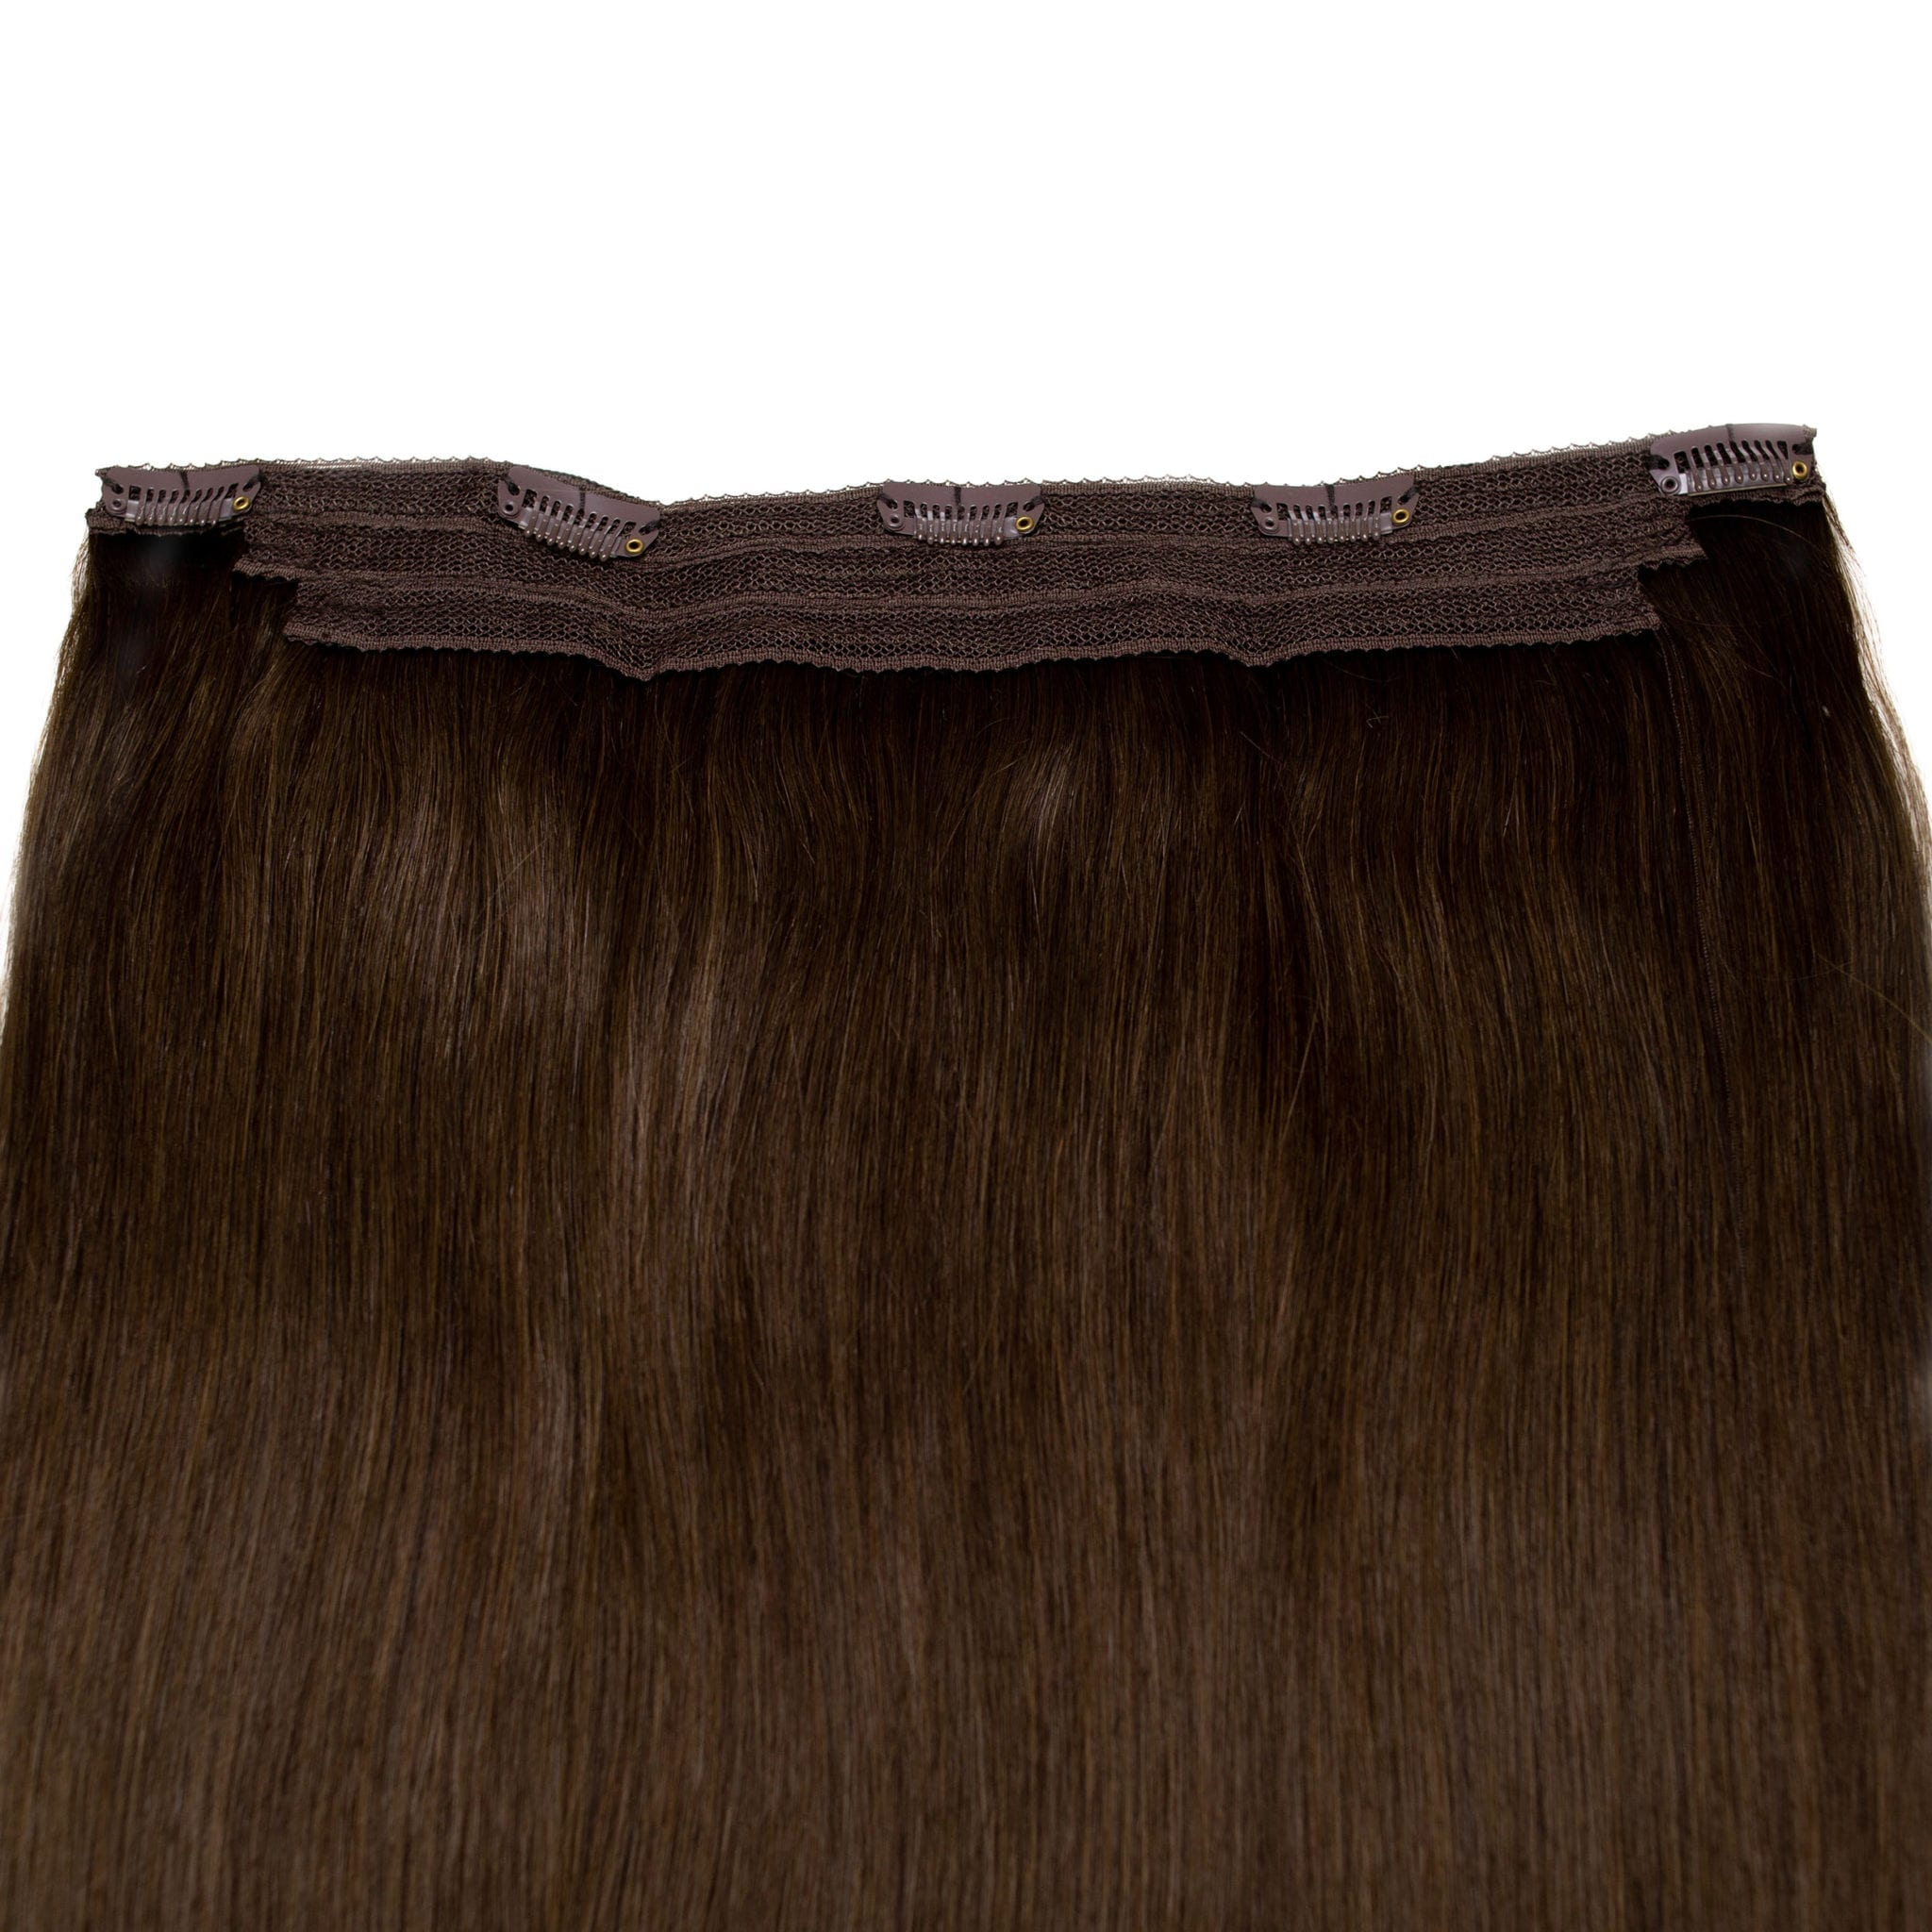 Edwards And Co. Extentions - Espresso in 1 piece